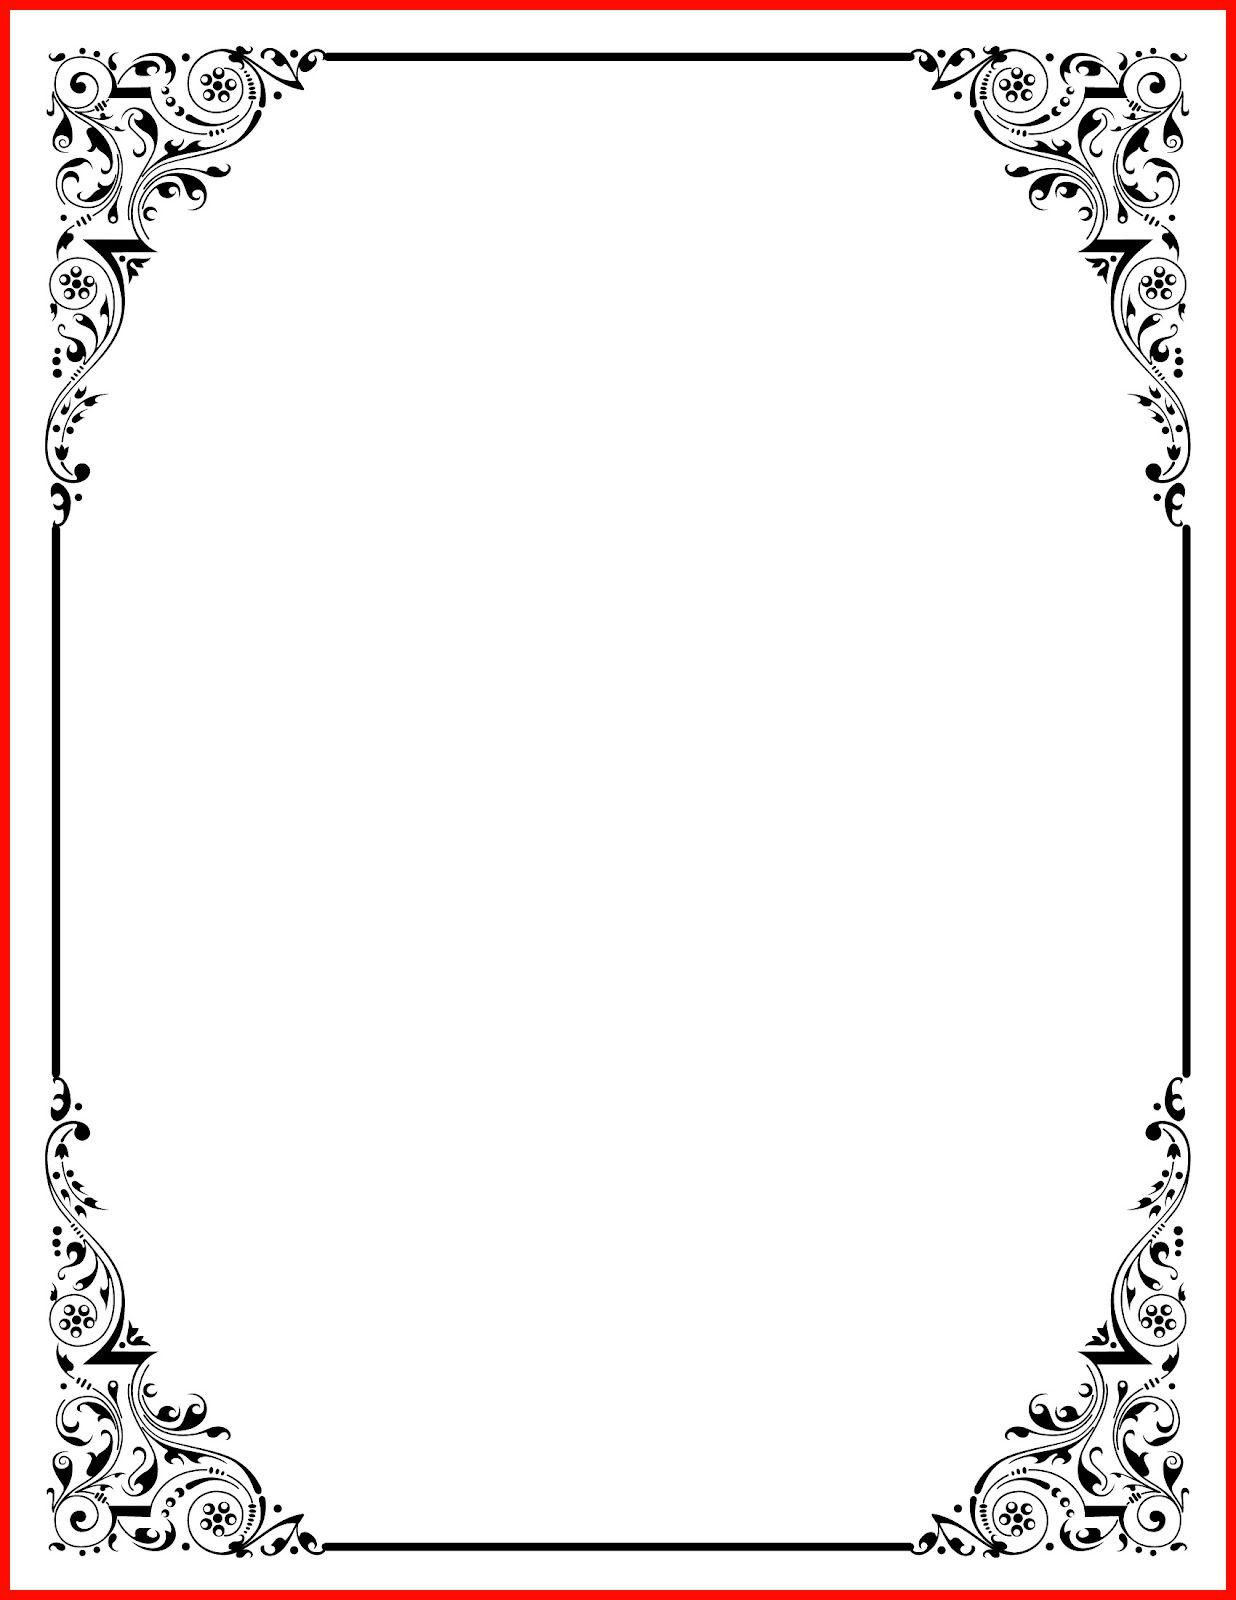 Wedding card frame clipart clipart free library Wedding Invitation Borders 221 You Can Use This Beautiful ... clipart free library